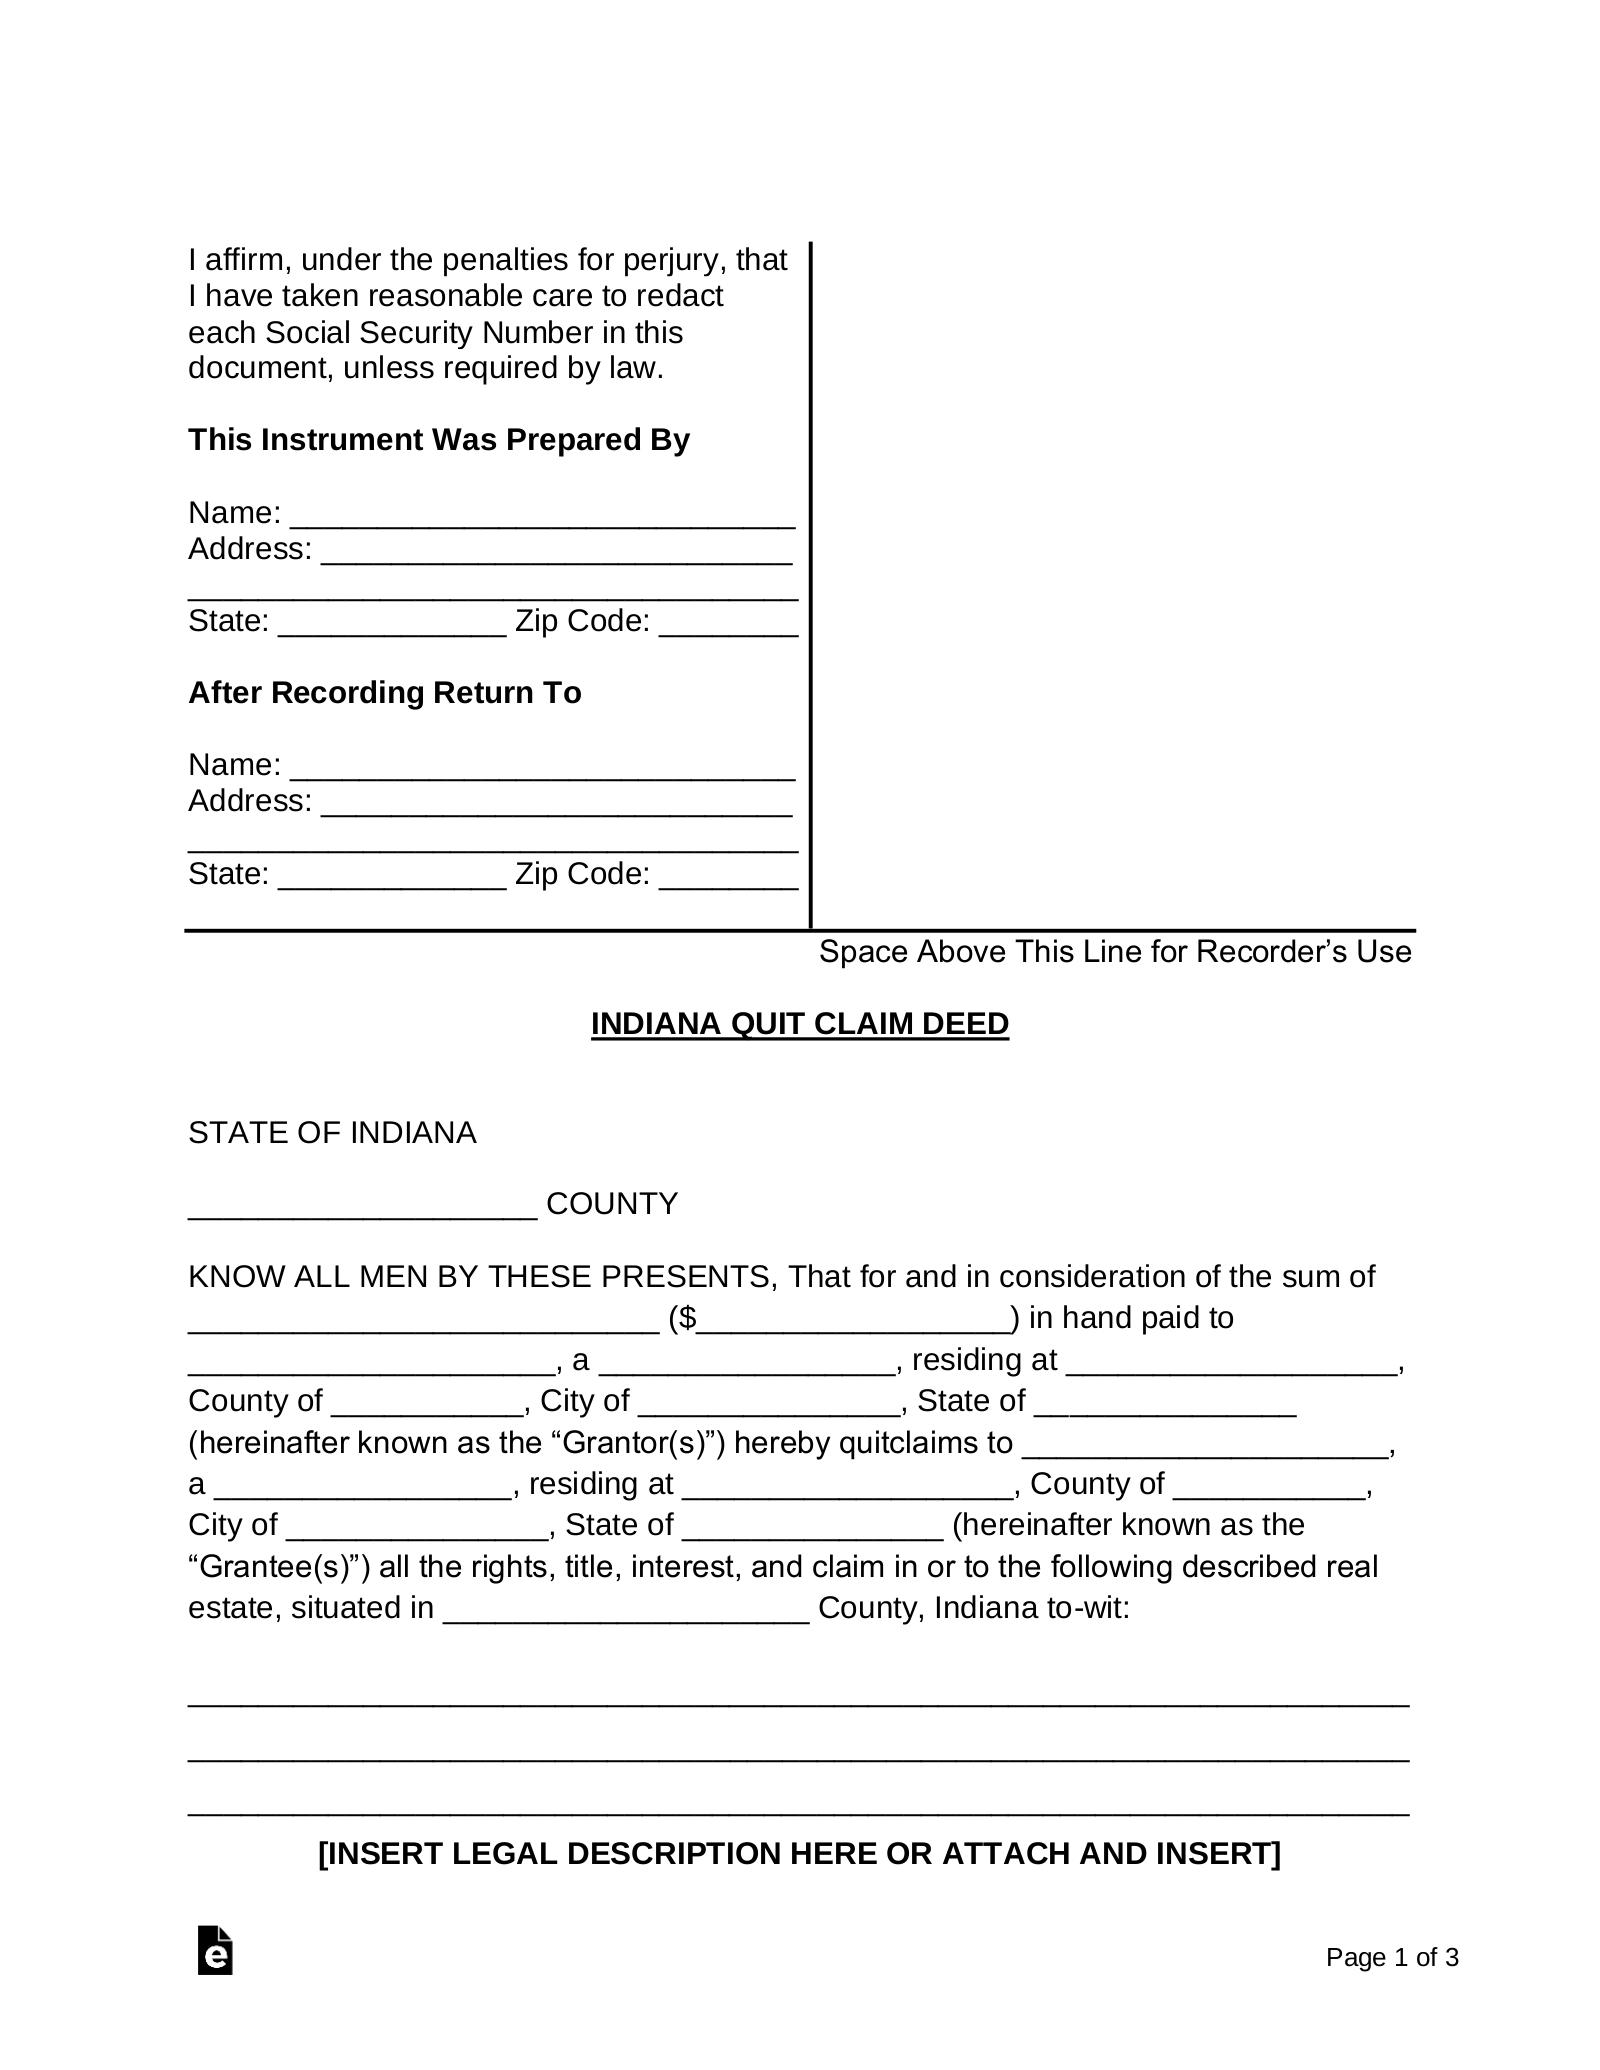 quick claim deed form indiana  Free Indiana Quit Claim Deed Form - Word | PDF | eForms ...